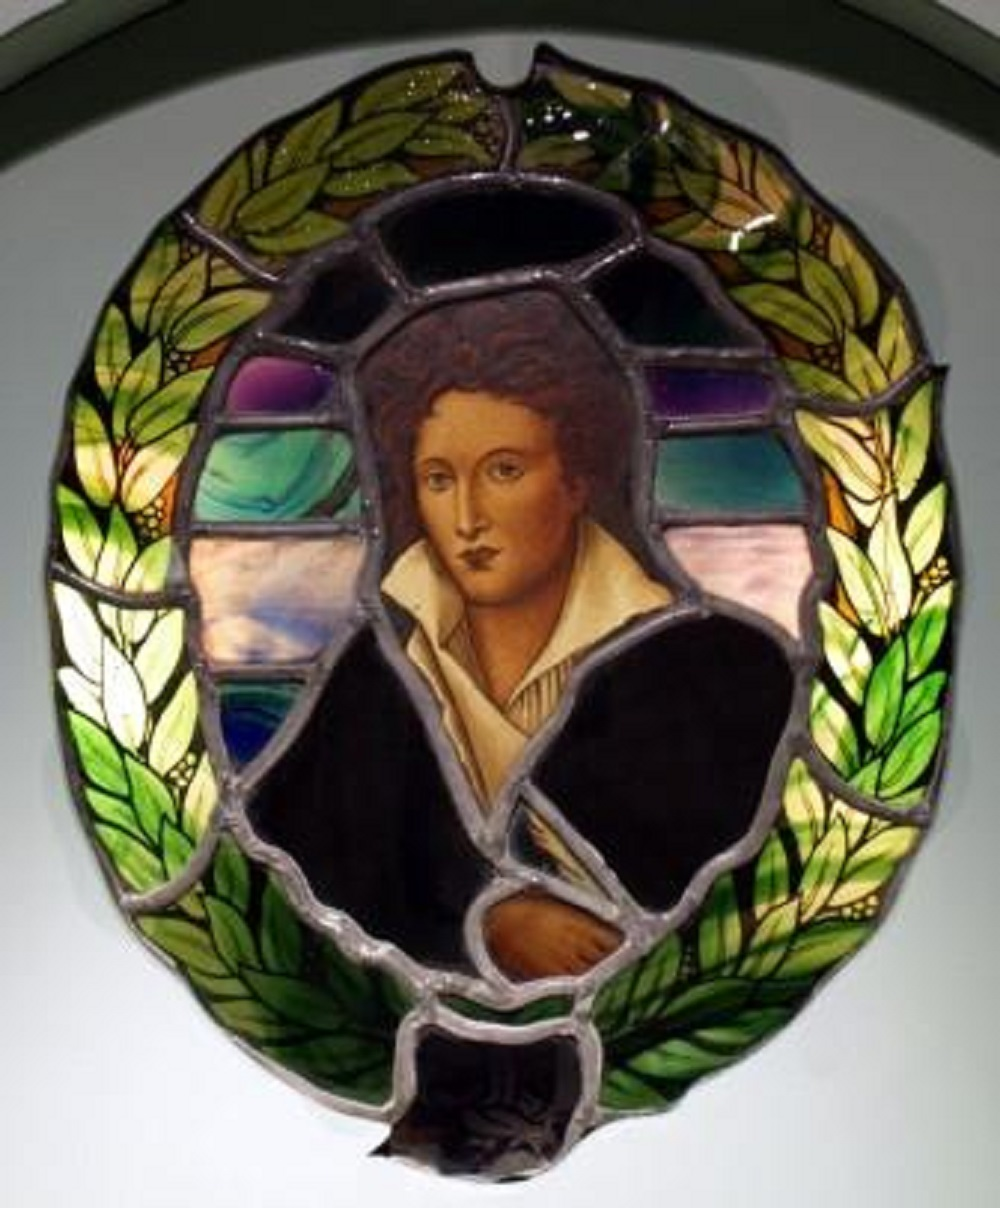 Shelley window at Horsham Museum